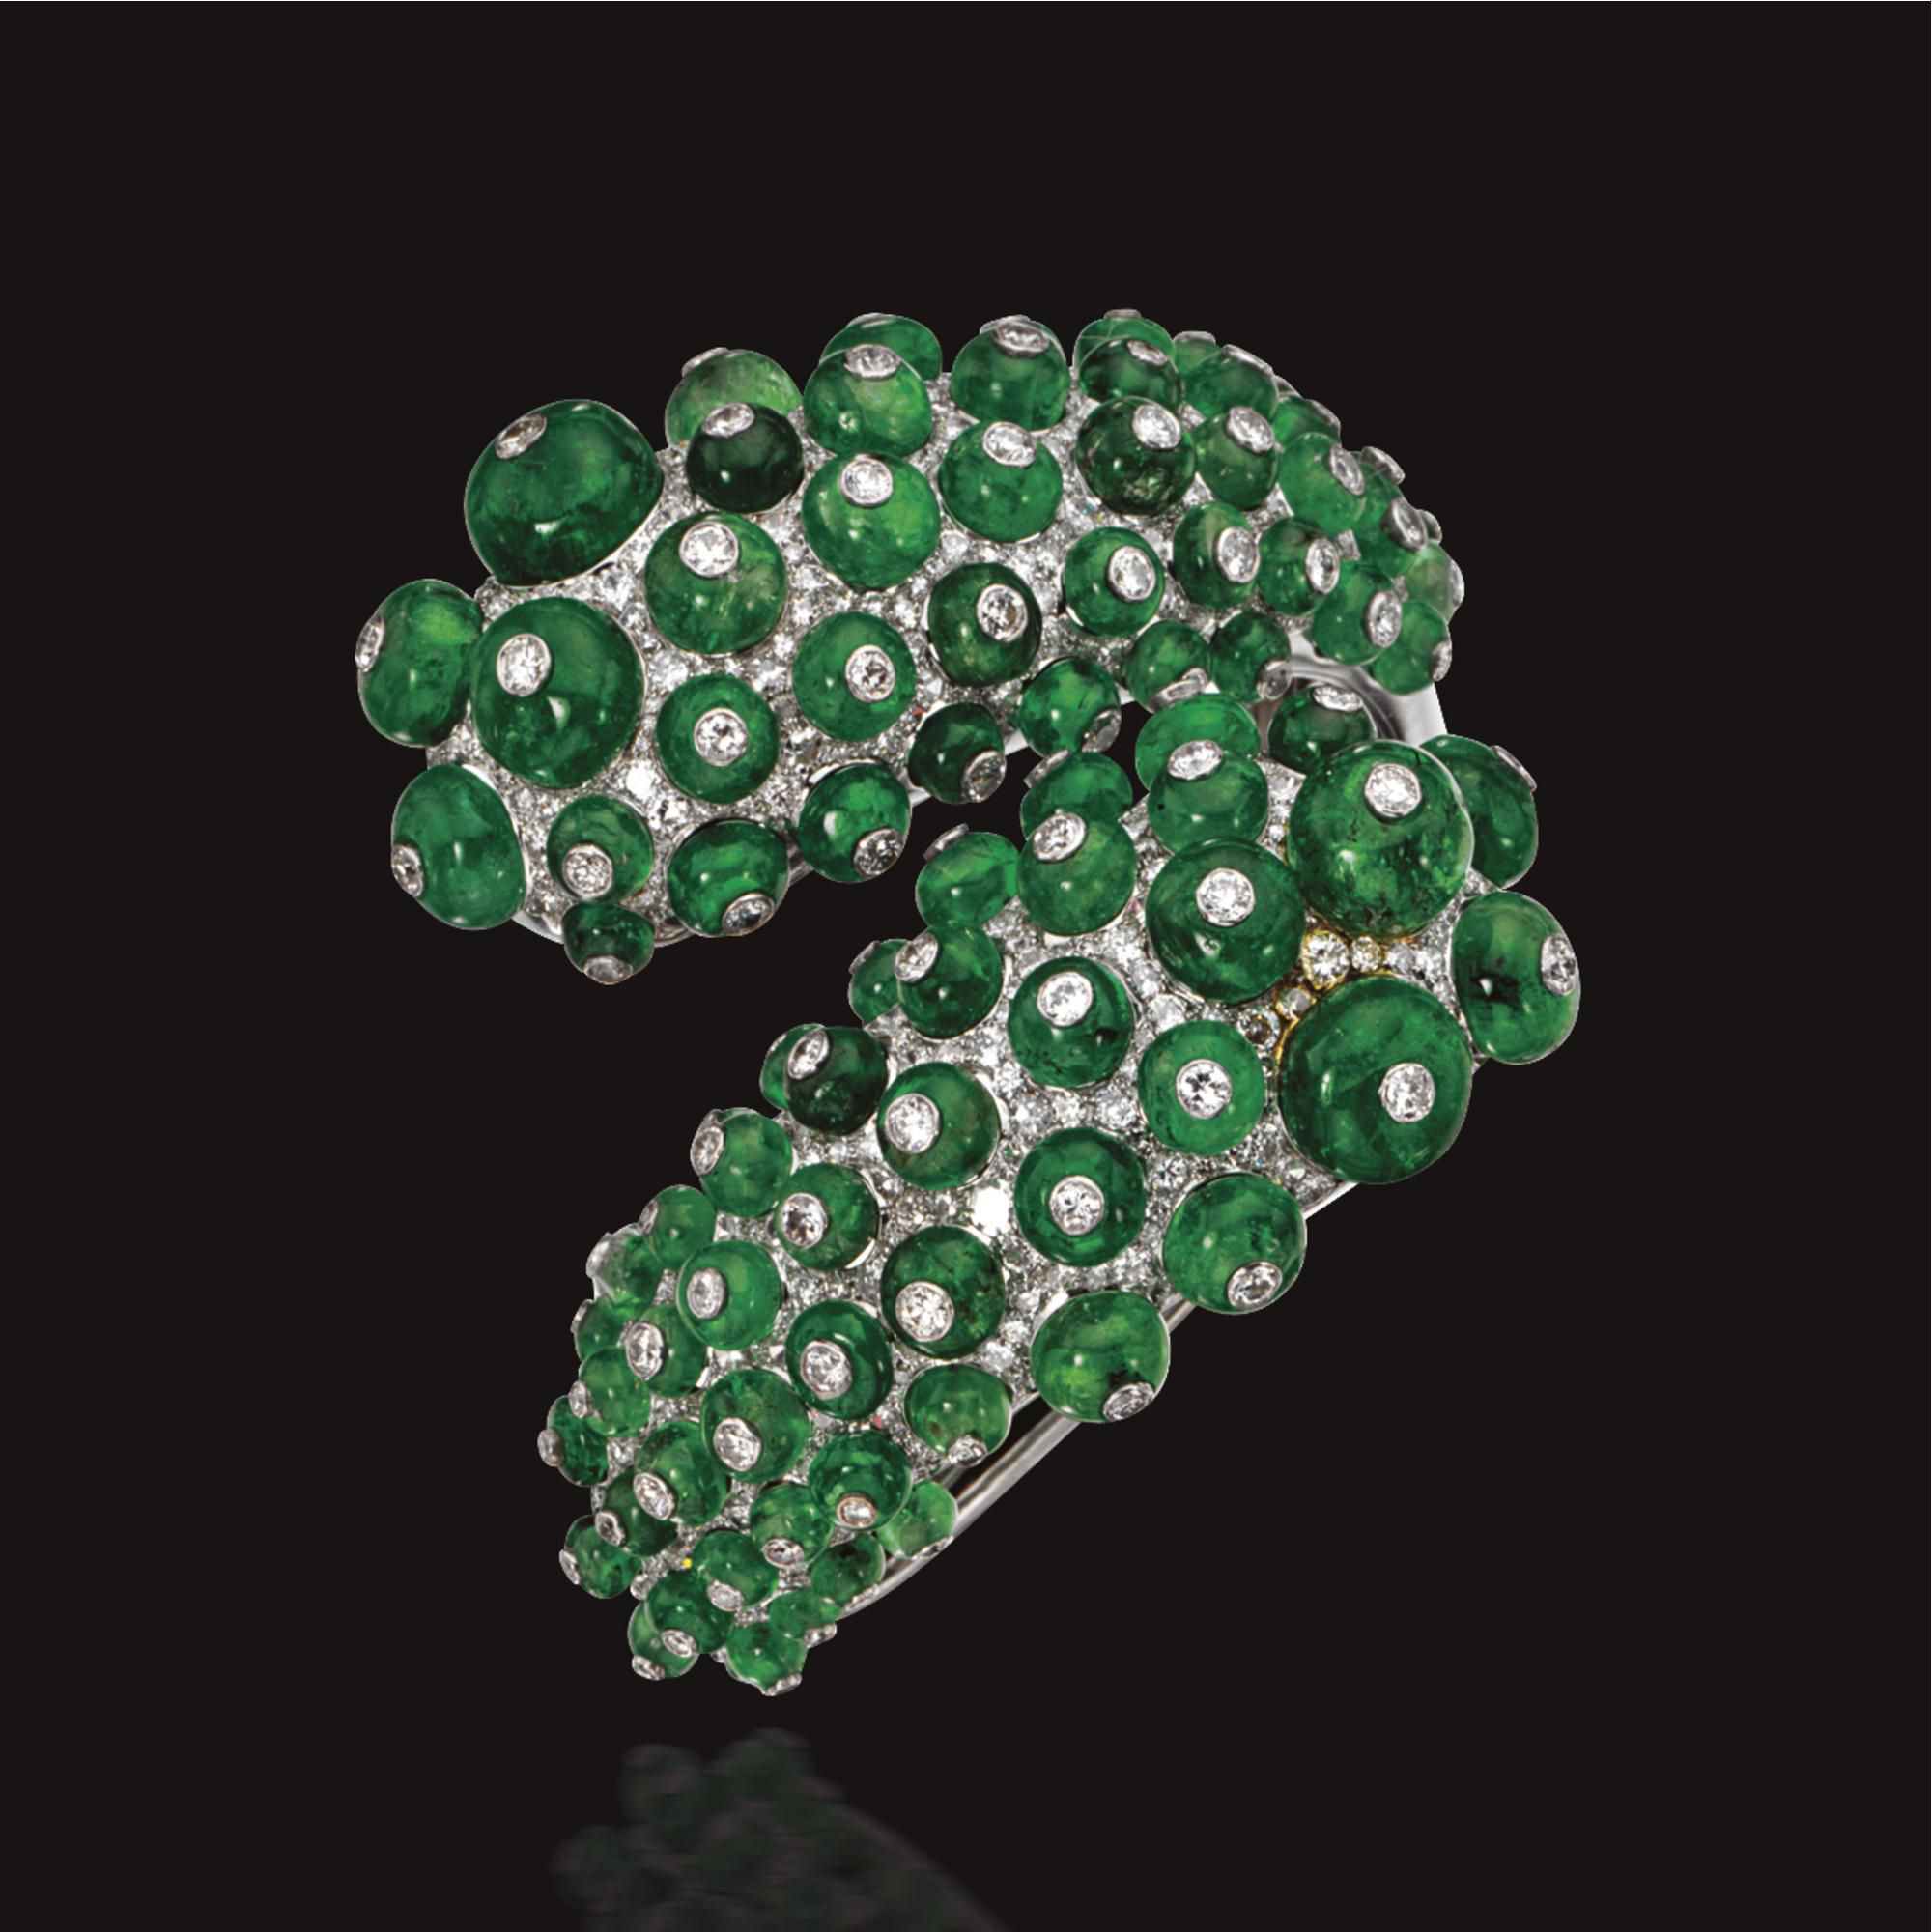 EMERALD BEAD AND DIAMOND BANGLE-BRACELET, PAUL FLATO, CIRCA 1940 Of hinged crossover design, the lobed bombé terminals studded with numerous emerald beads within a ground of pavé-set diamonds, each bead inset with a small round diamond, mounted in white gold